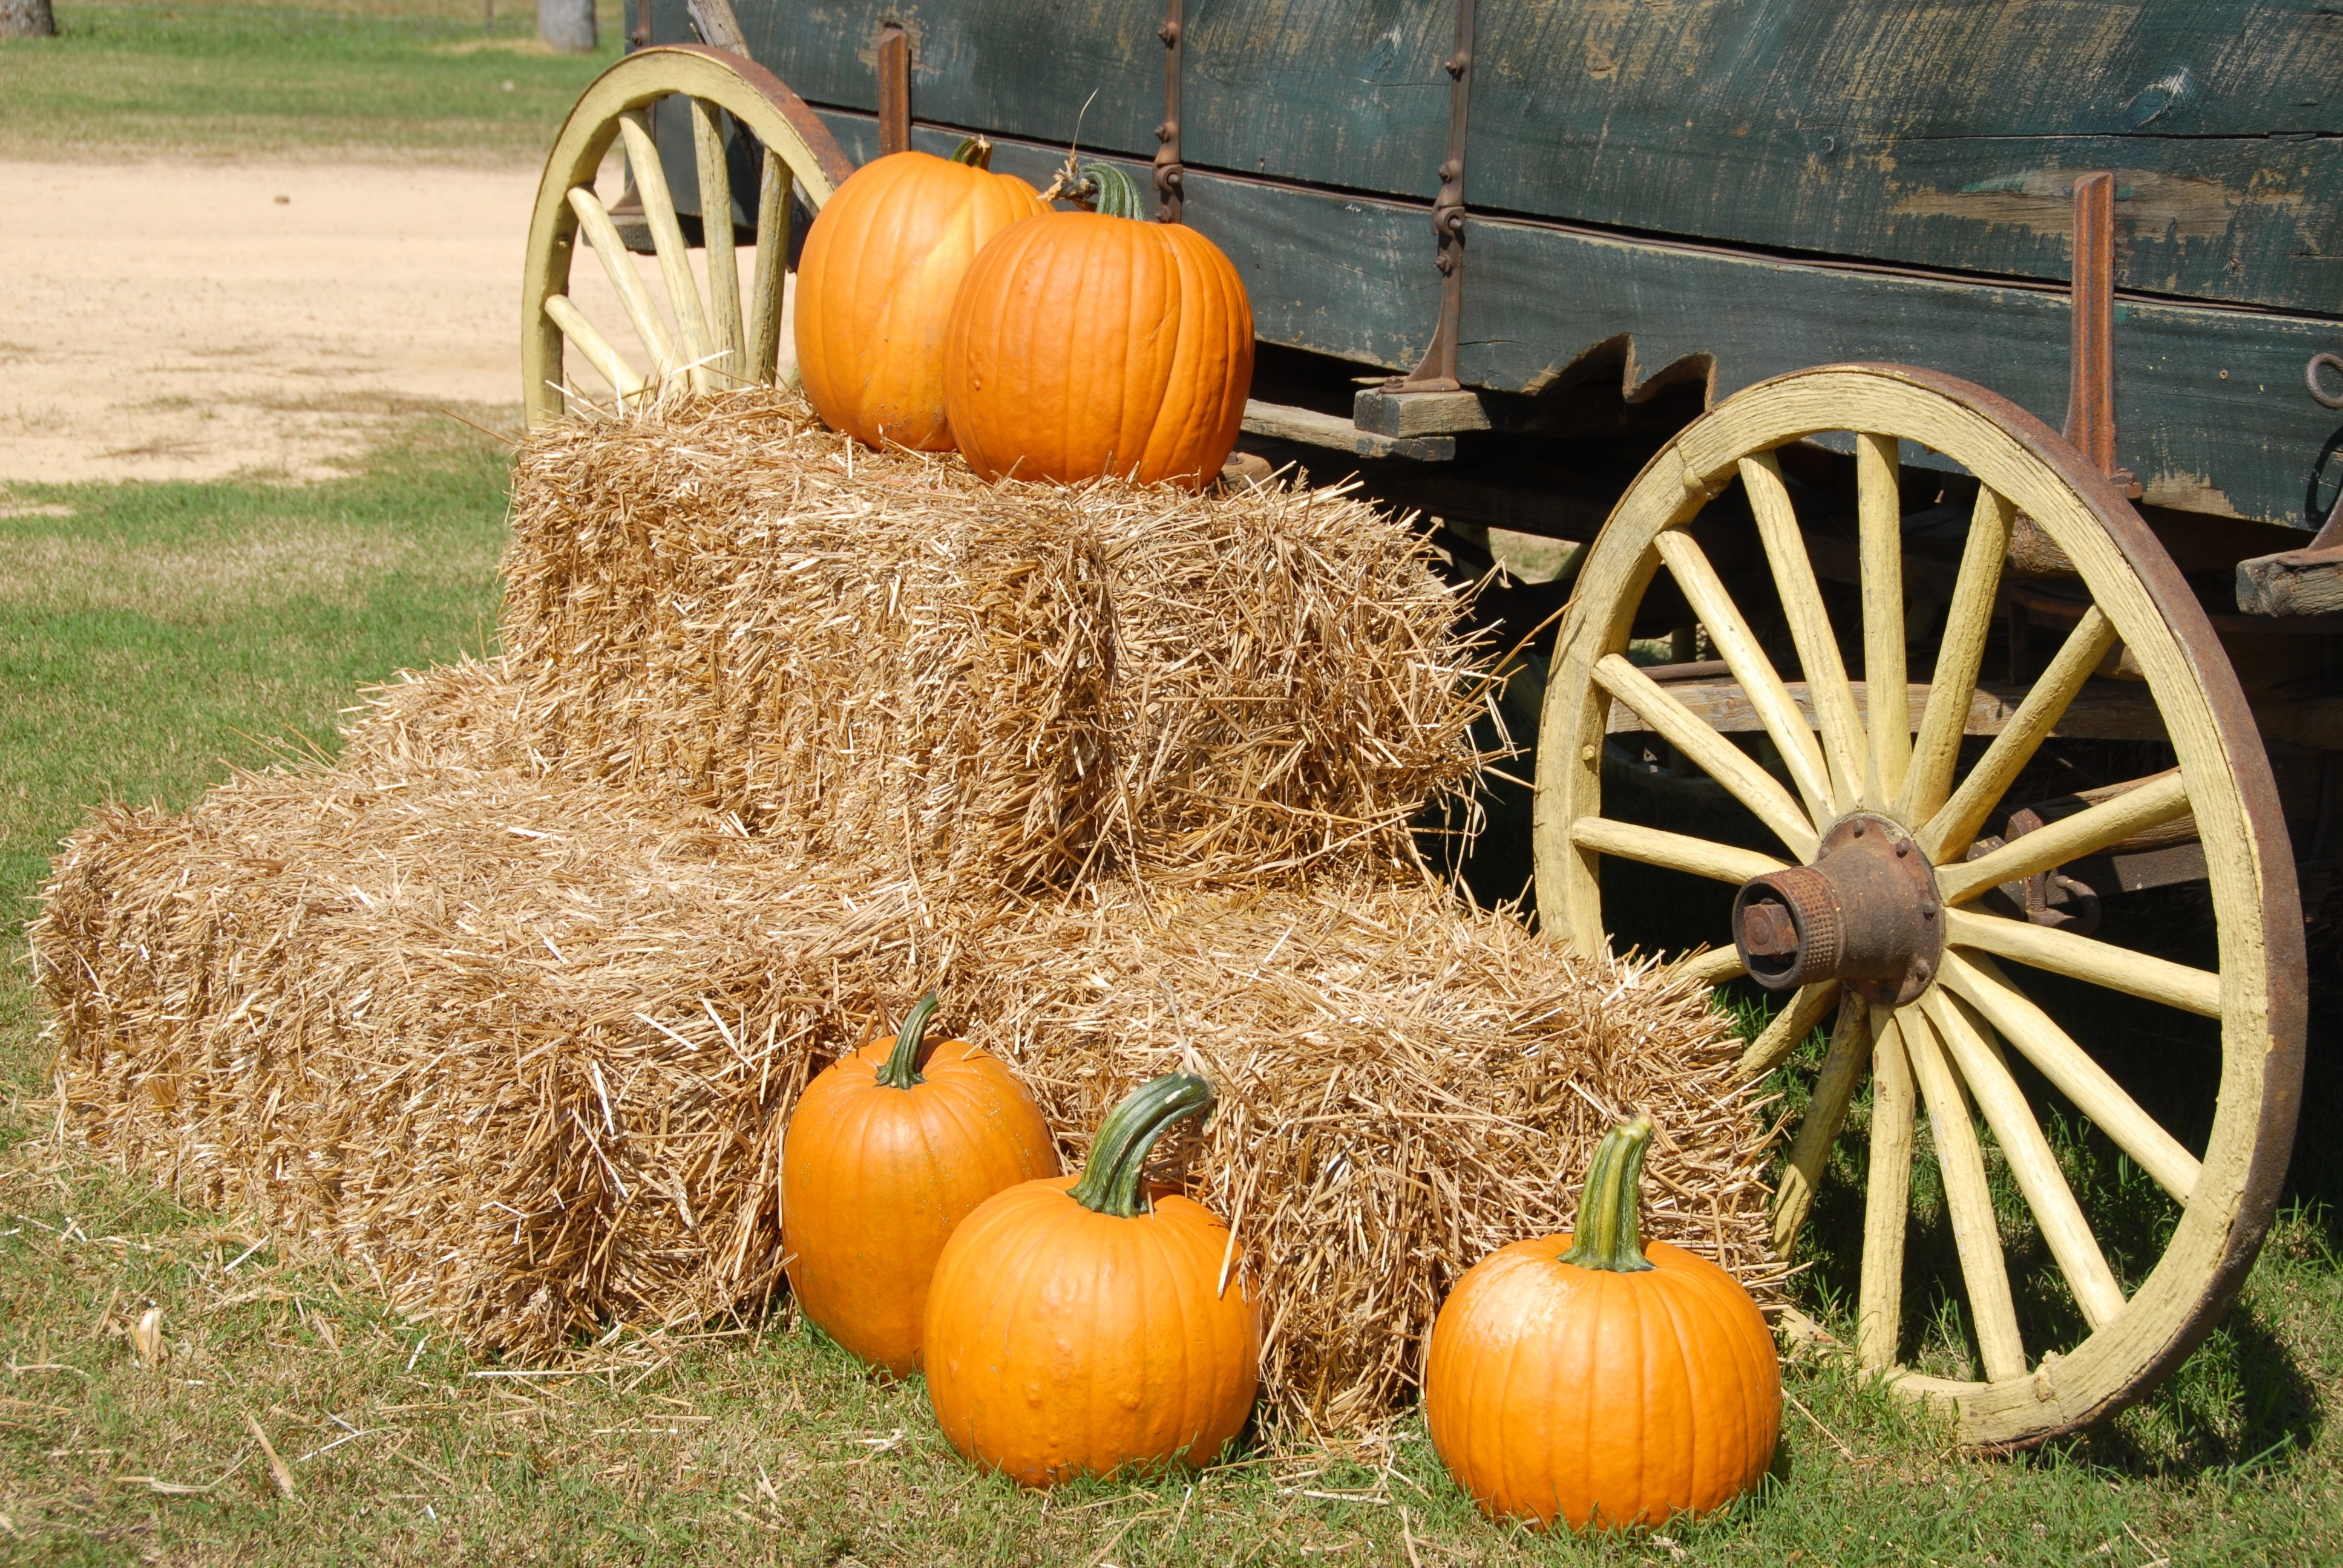 While your house is getting cleaned visit the OC pumpkin farms